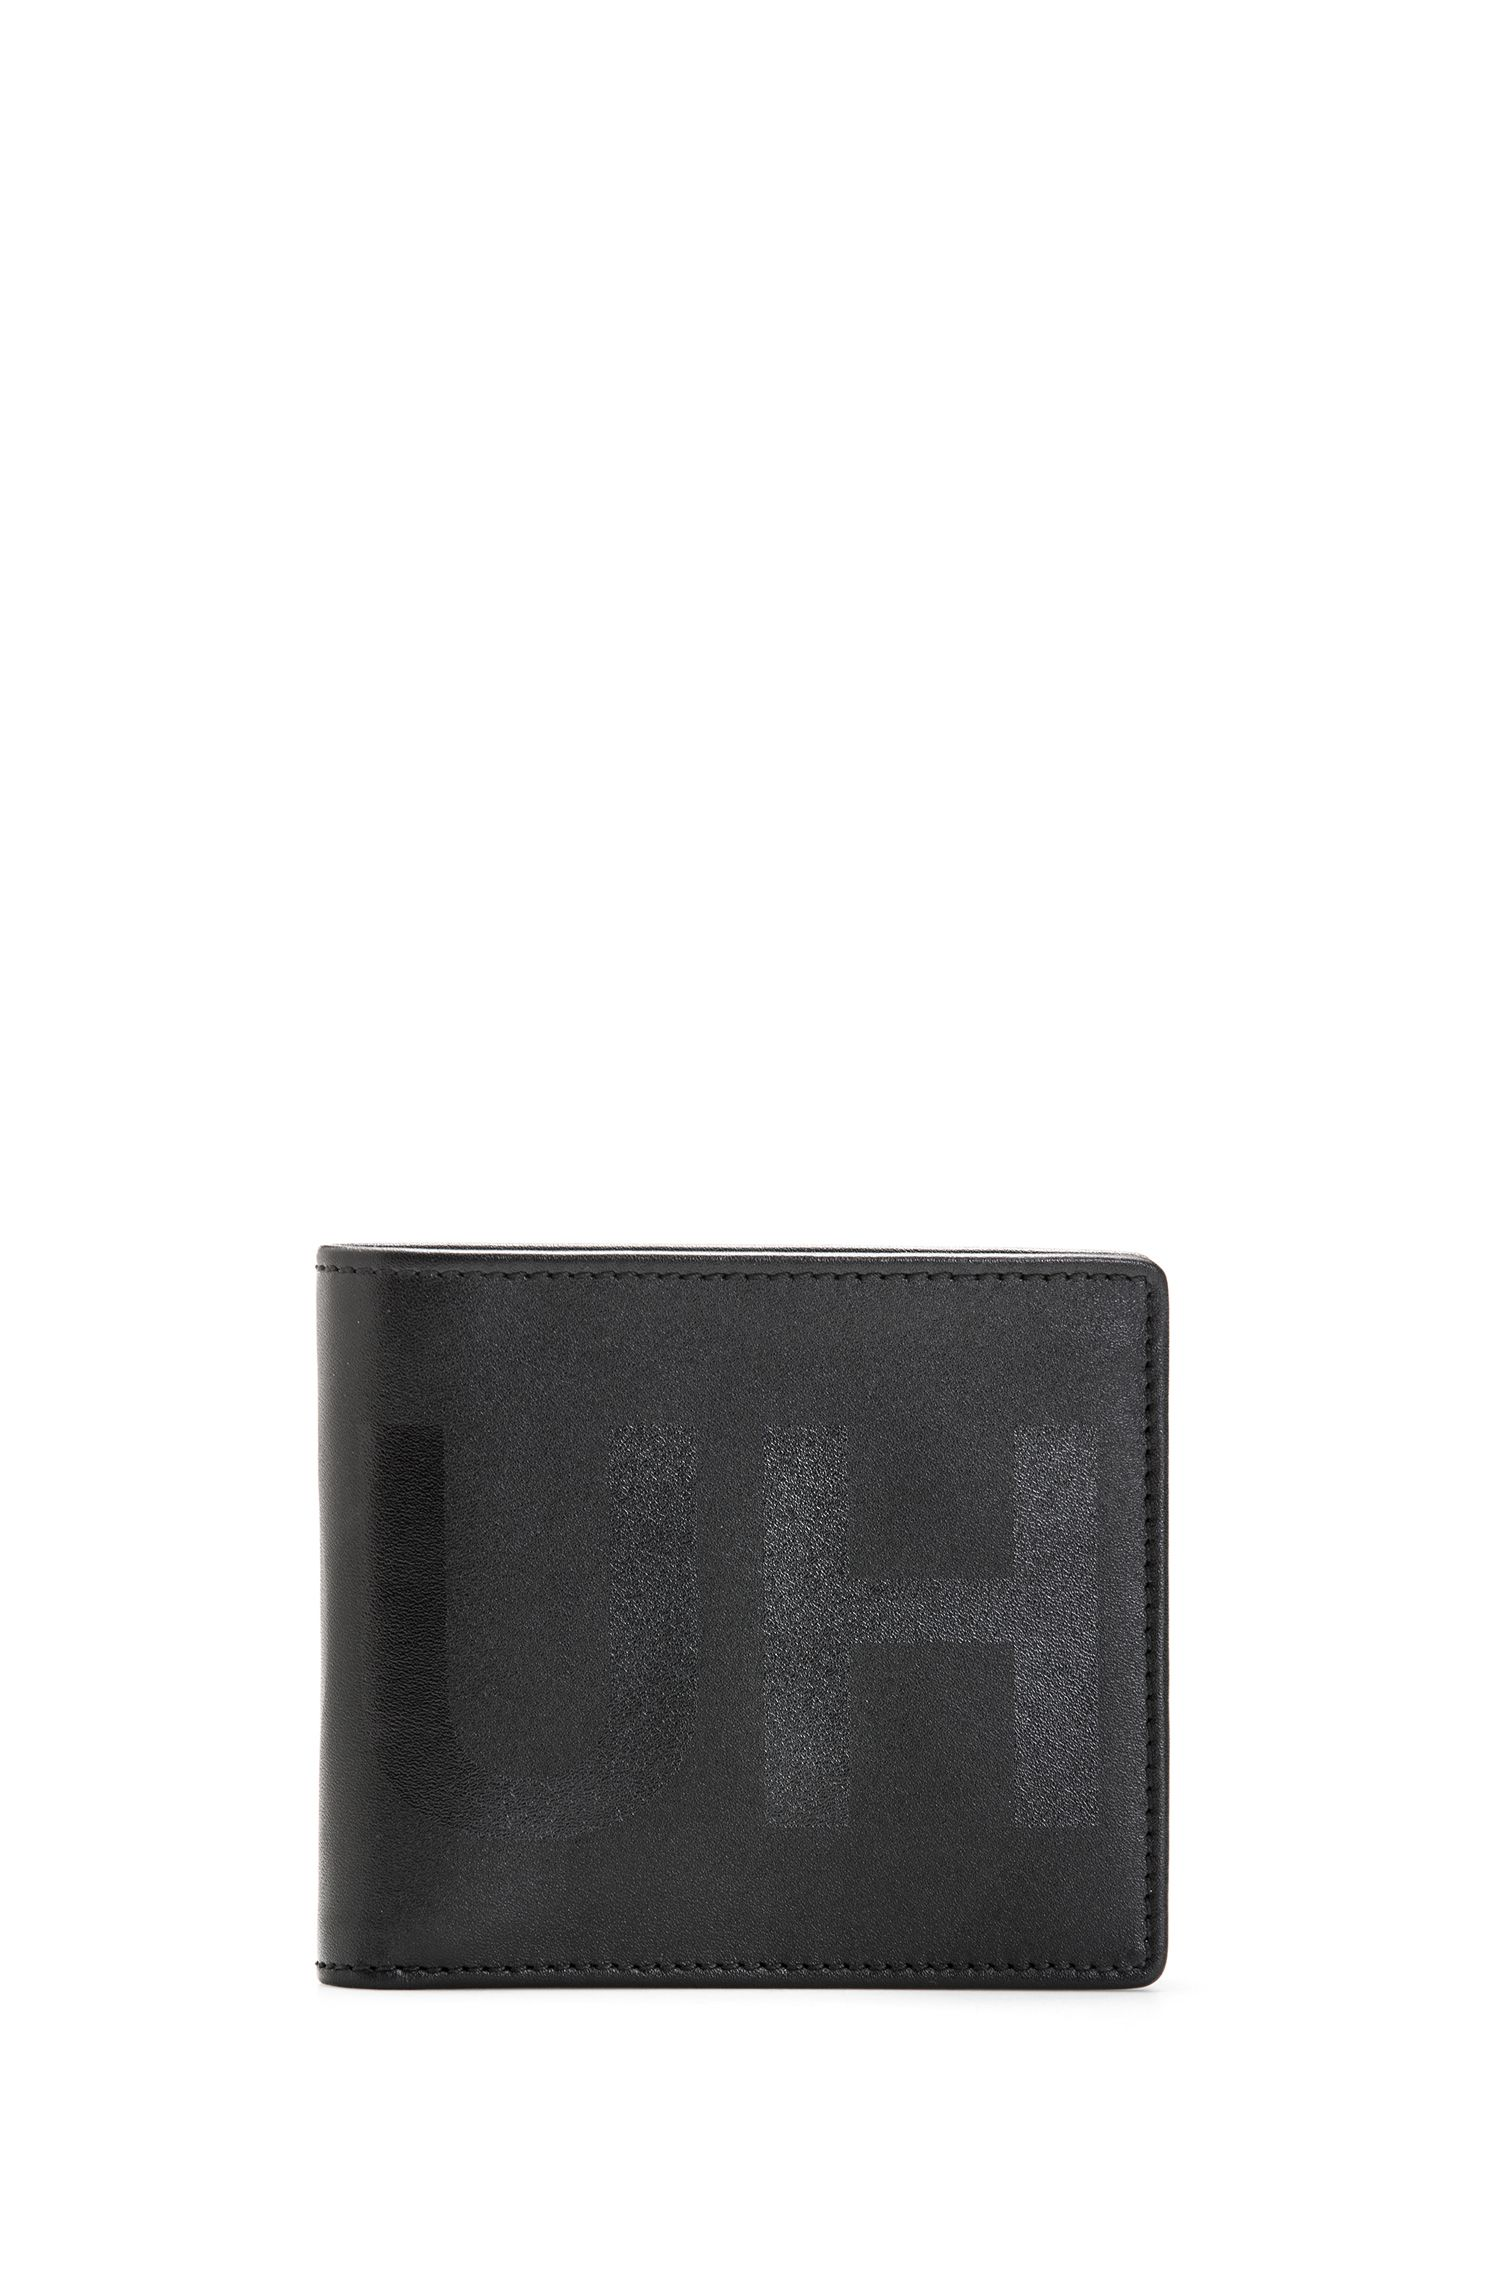 Eight-card leather billfold wallet with tonal reverse logo, Black